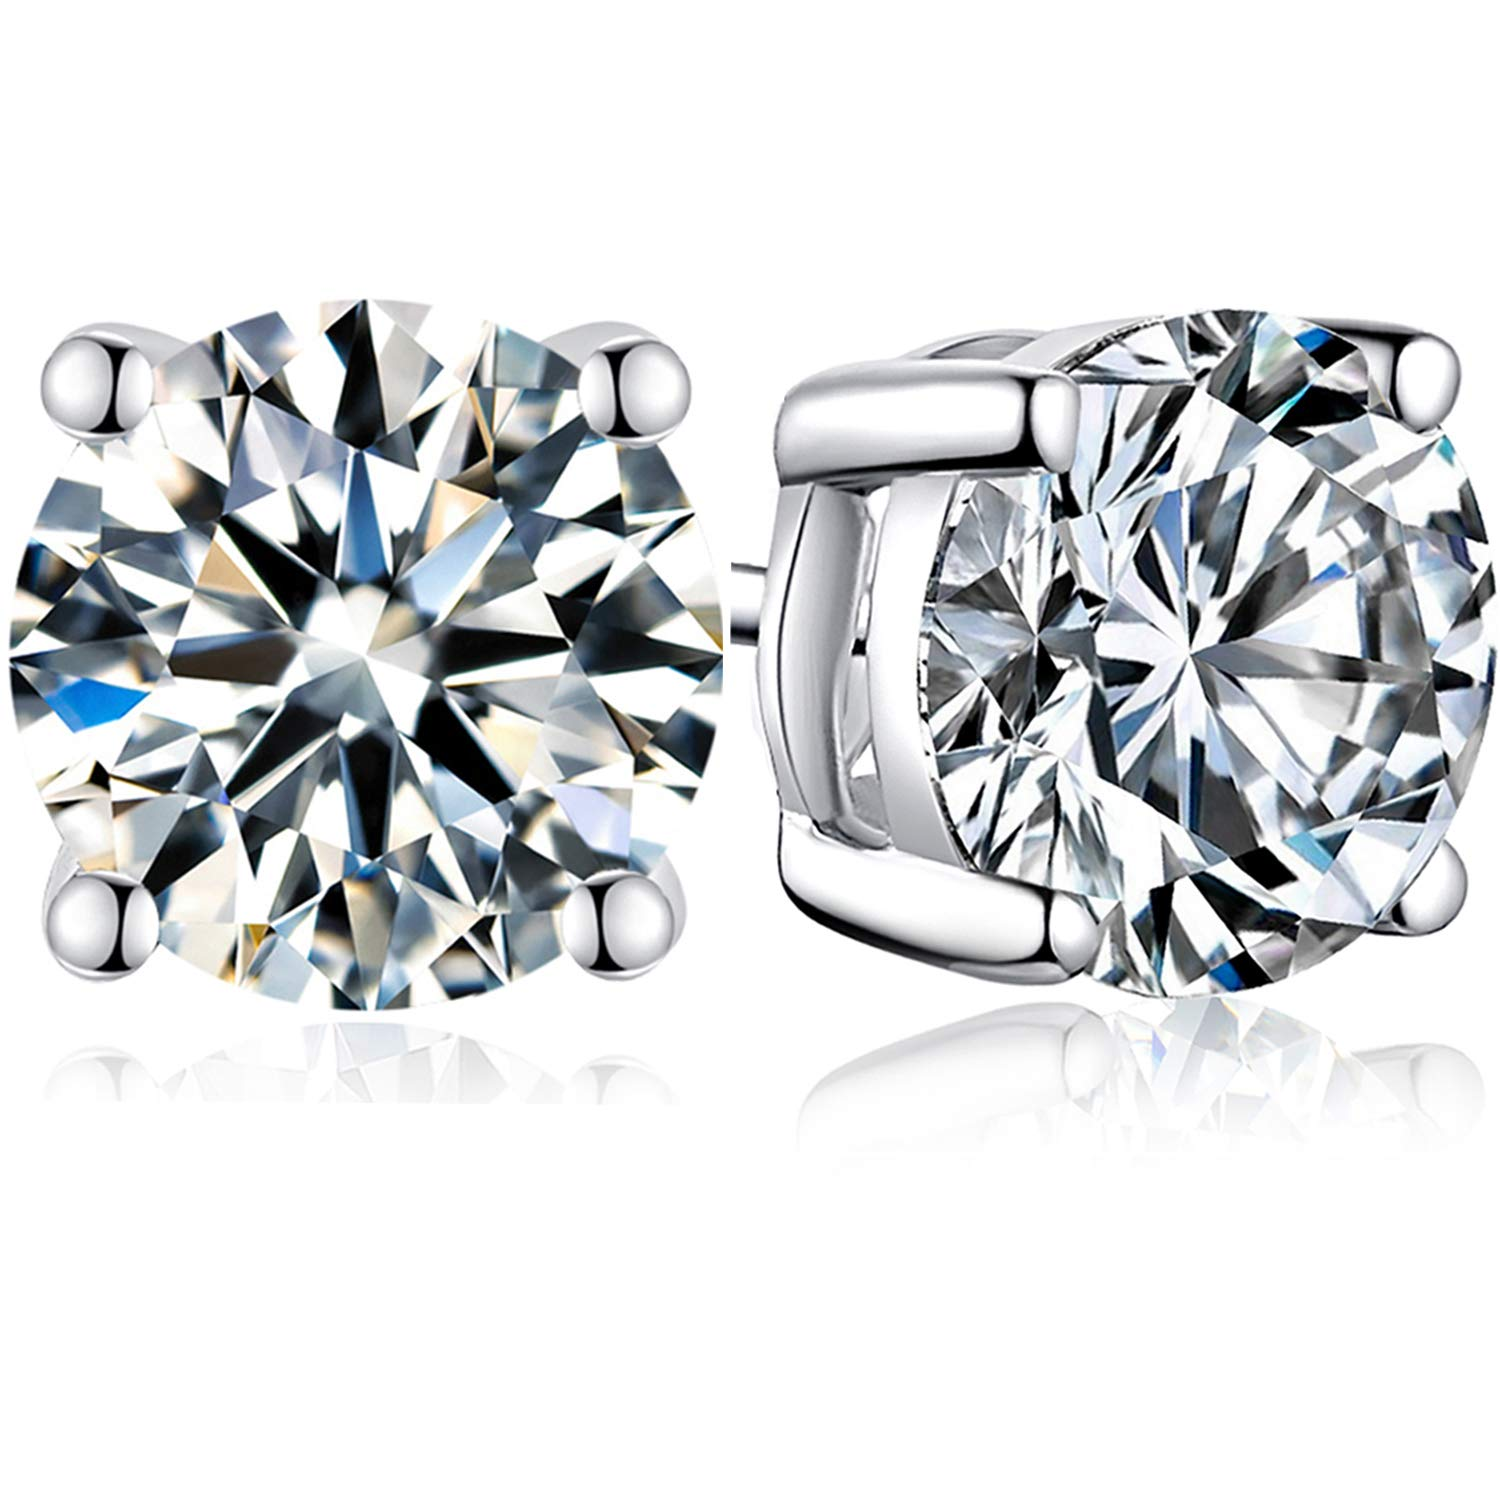 87c9edf7b Amazon.com: Sterling Silver Cubic Zirconia Stud Earrings For Women Men  Grils Brilliance Round Cut 1.0 Carat: Jewelry